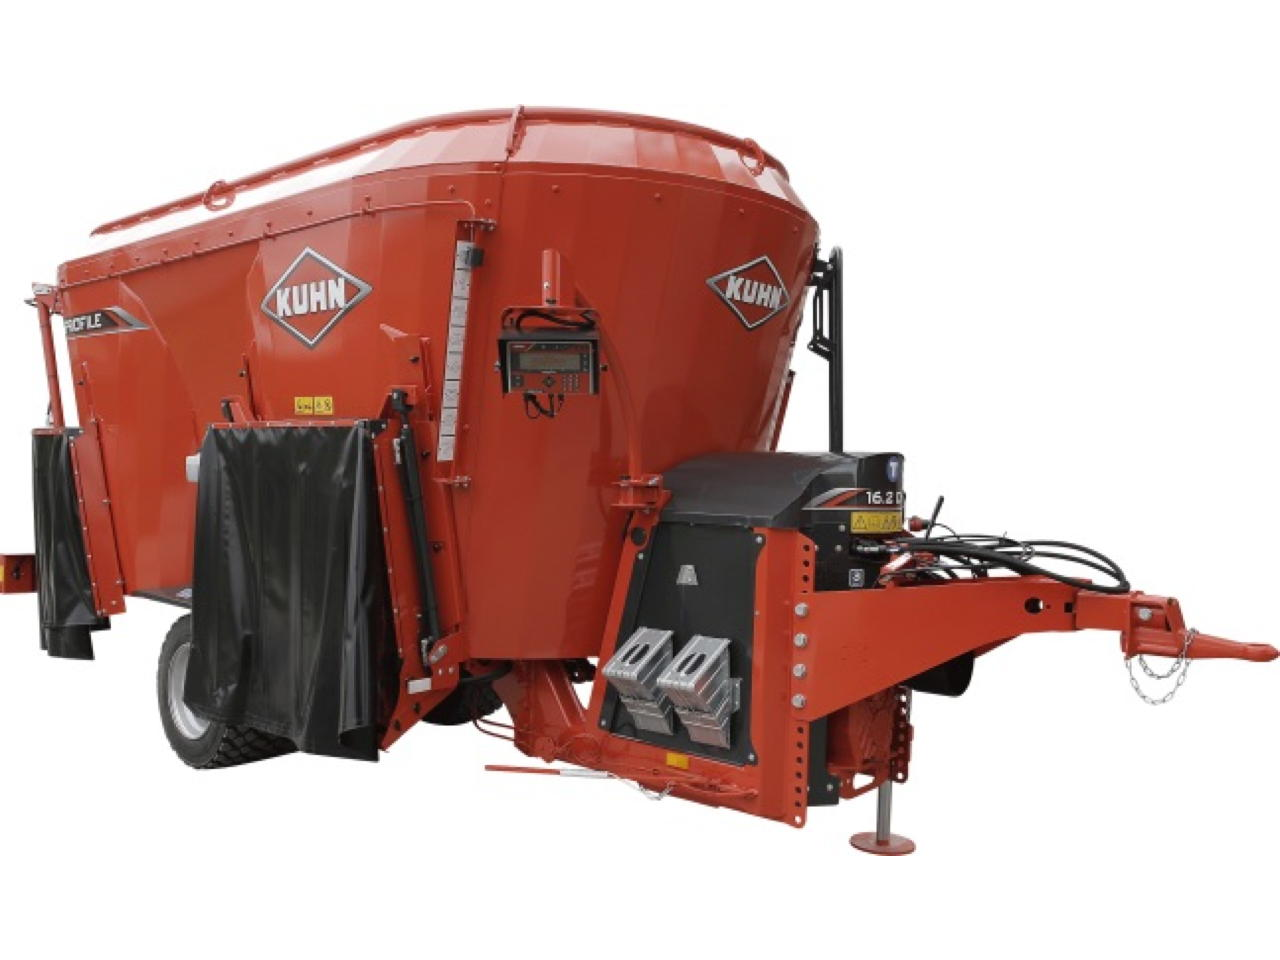 Kuhn Profile 2 DS